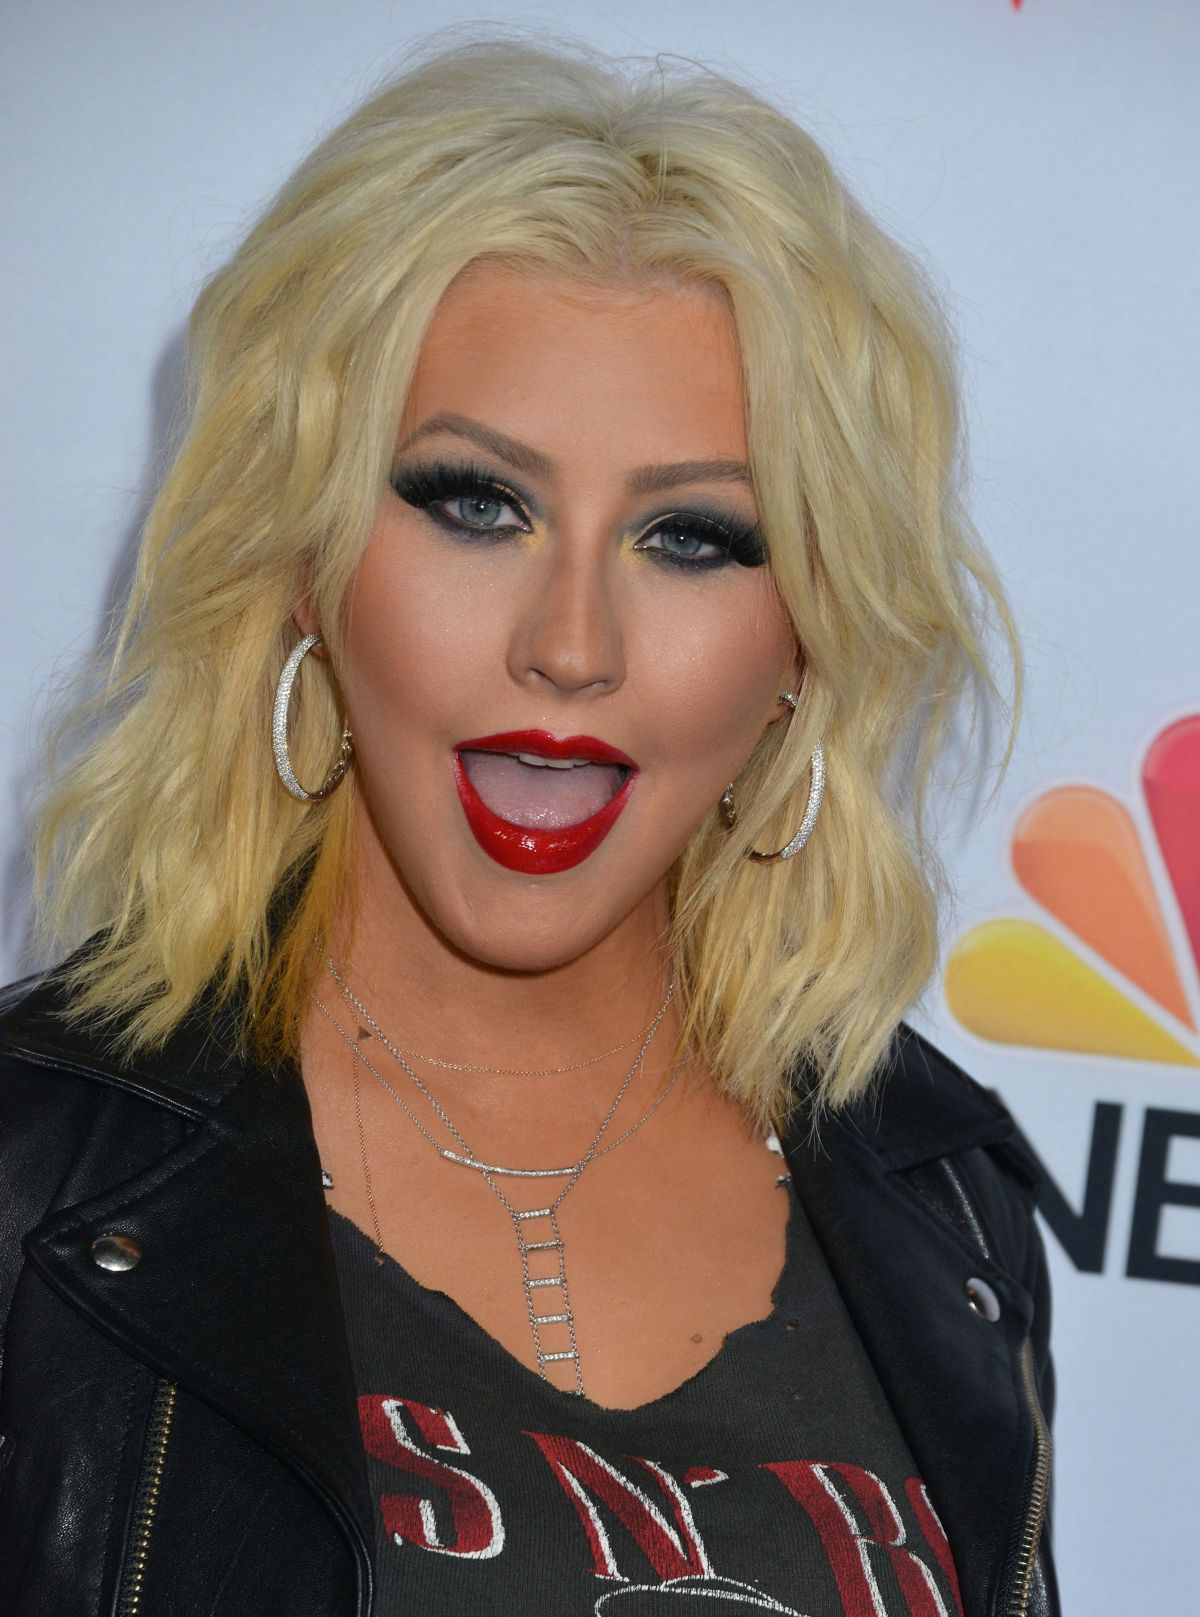 Christina Aguilera At Nbc S The Voice Season 8 Red Carpet